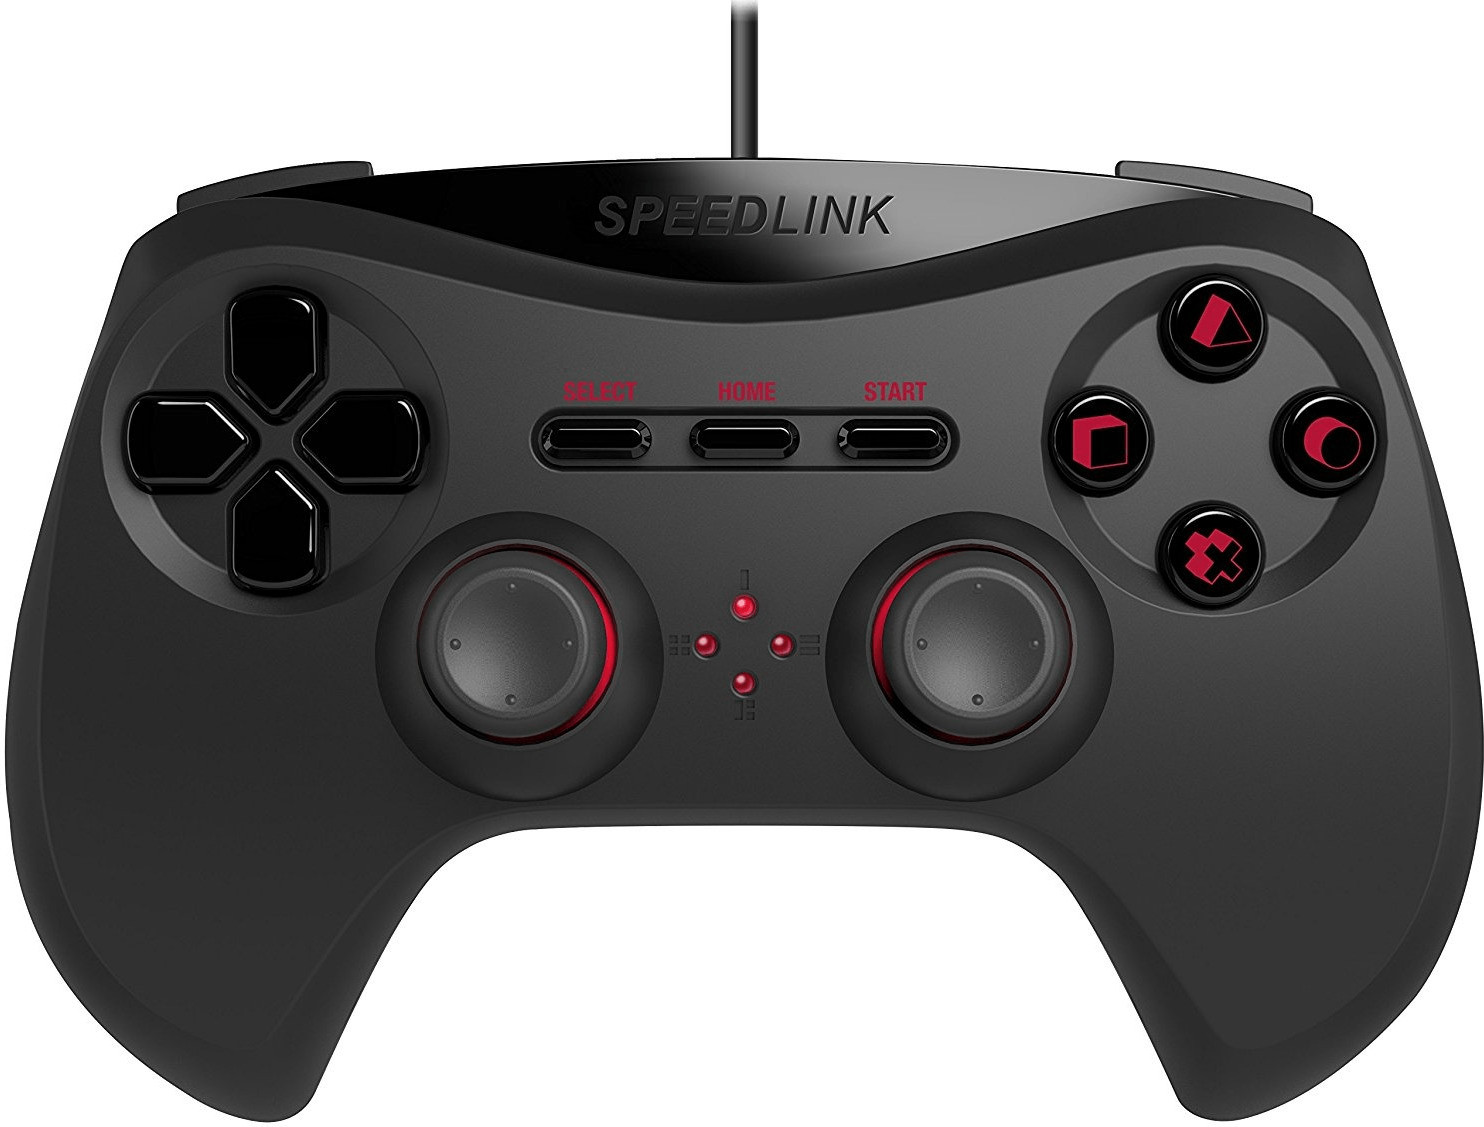 Image of Speedlink PS3 Strike NX Gamepad (SL-440400-BK-01)